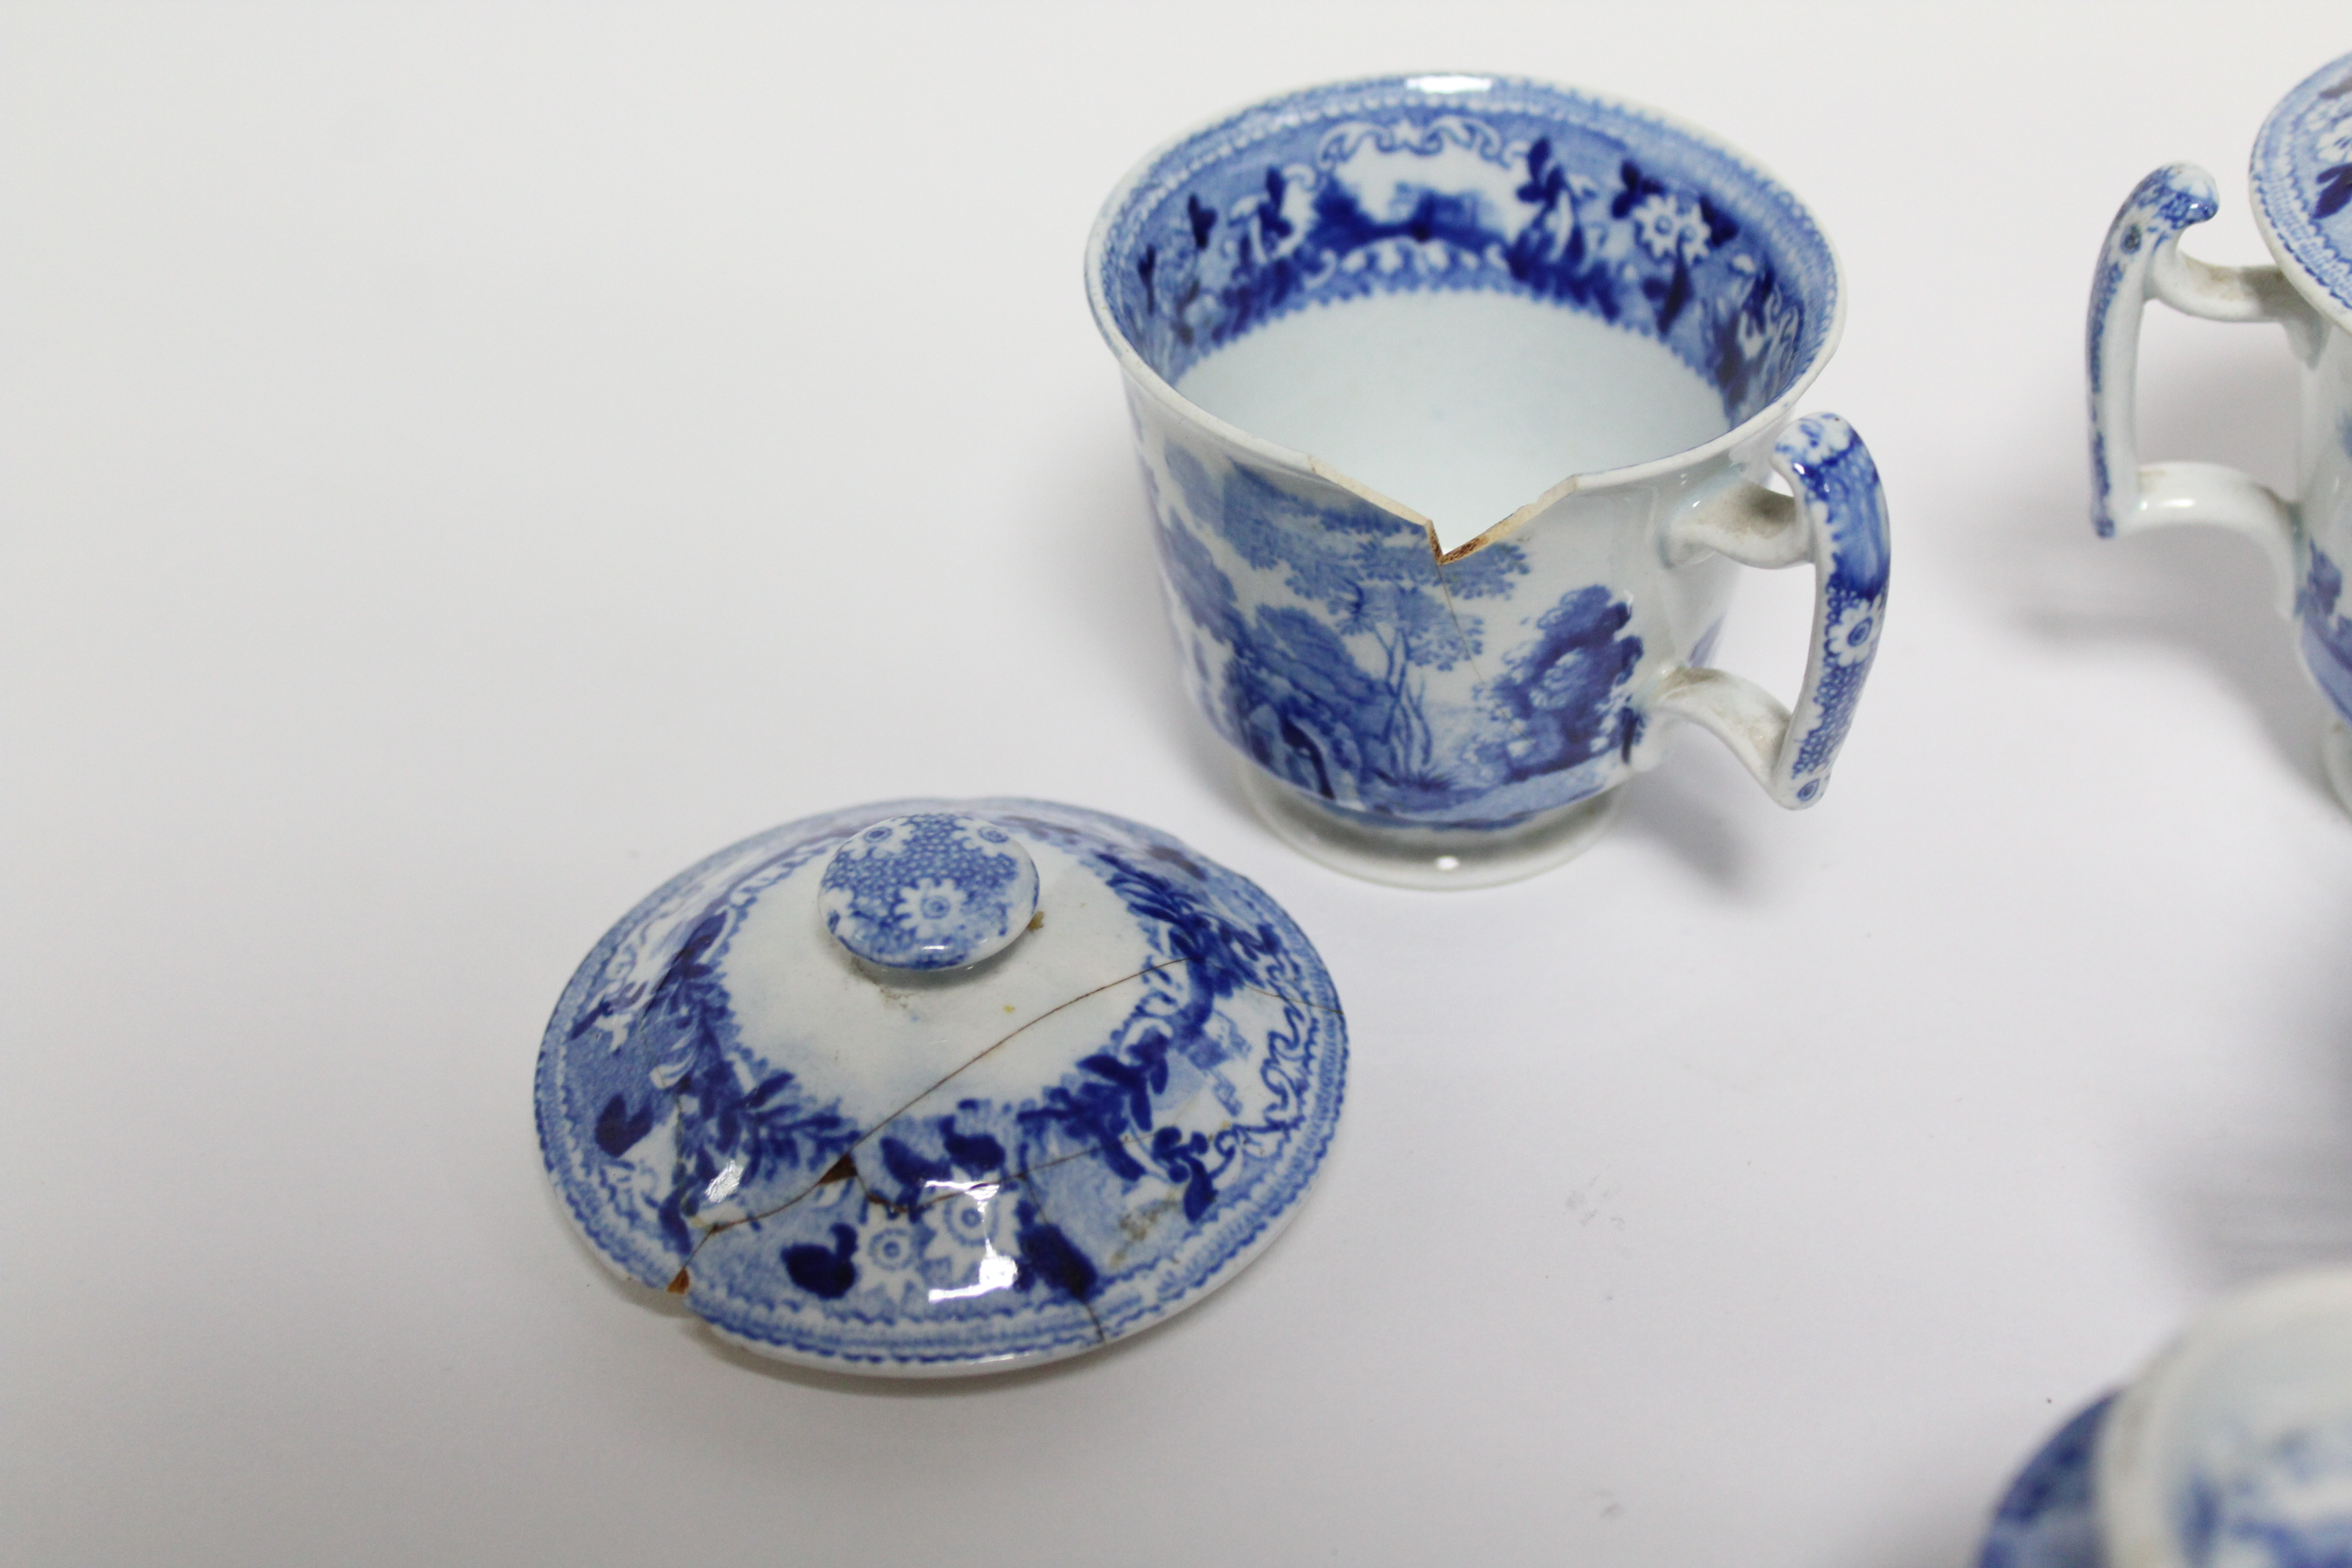 Lot 54 - A set of six early 19th century blue transfer custard cups & covers, each decorated with scenes from